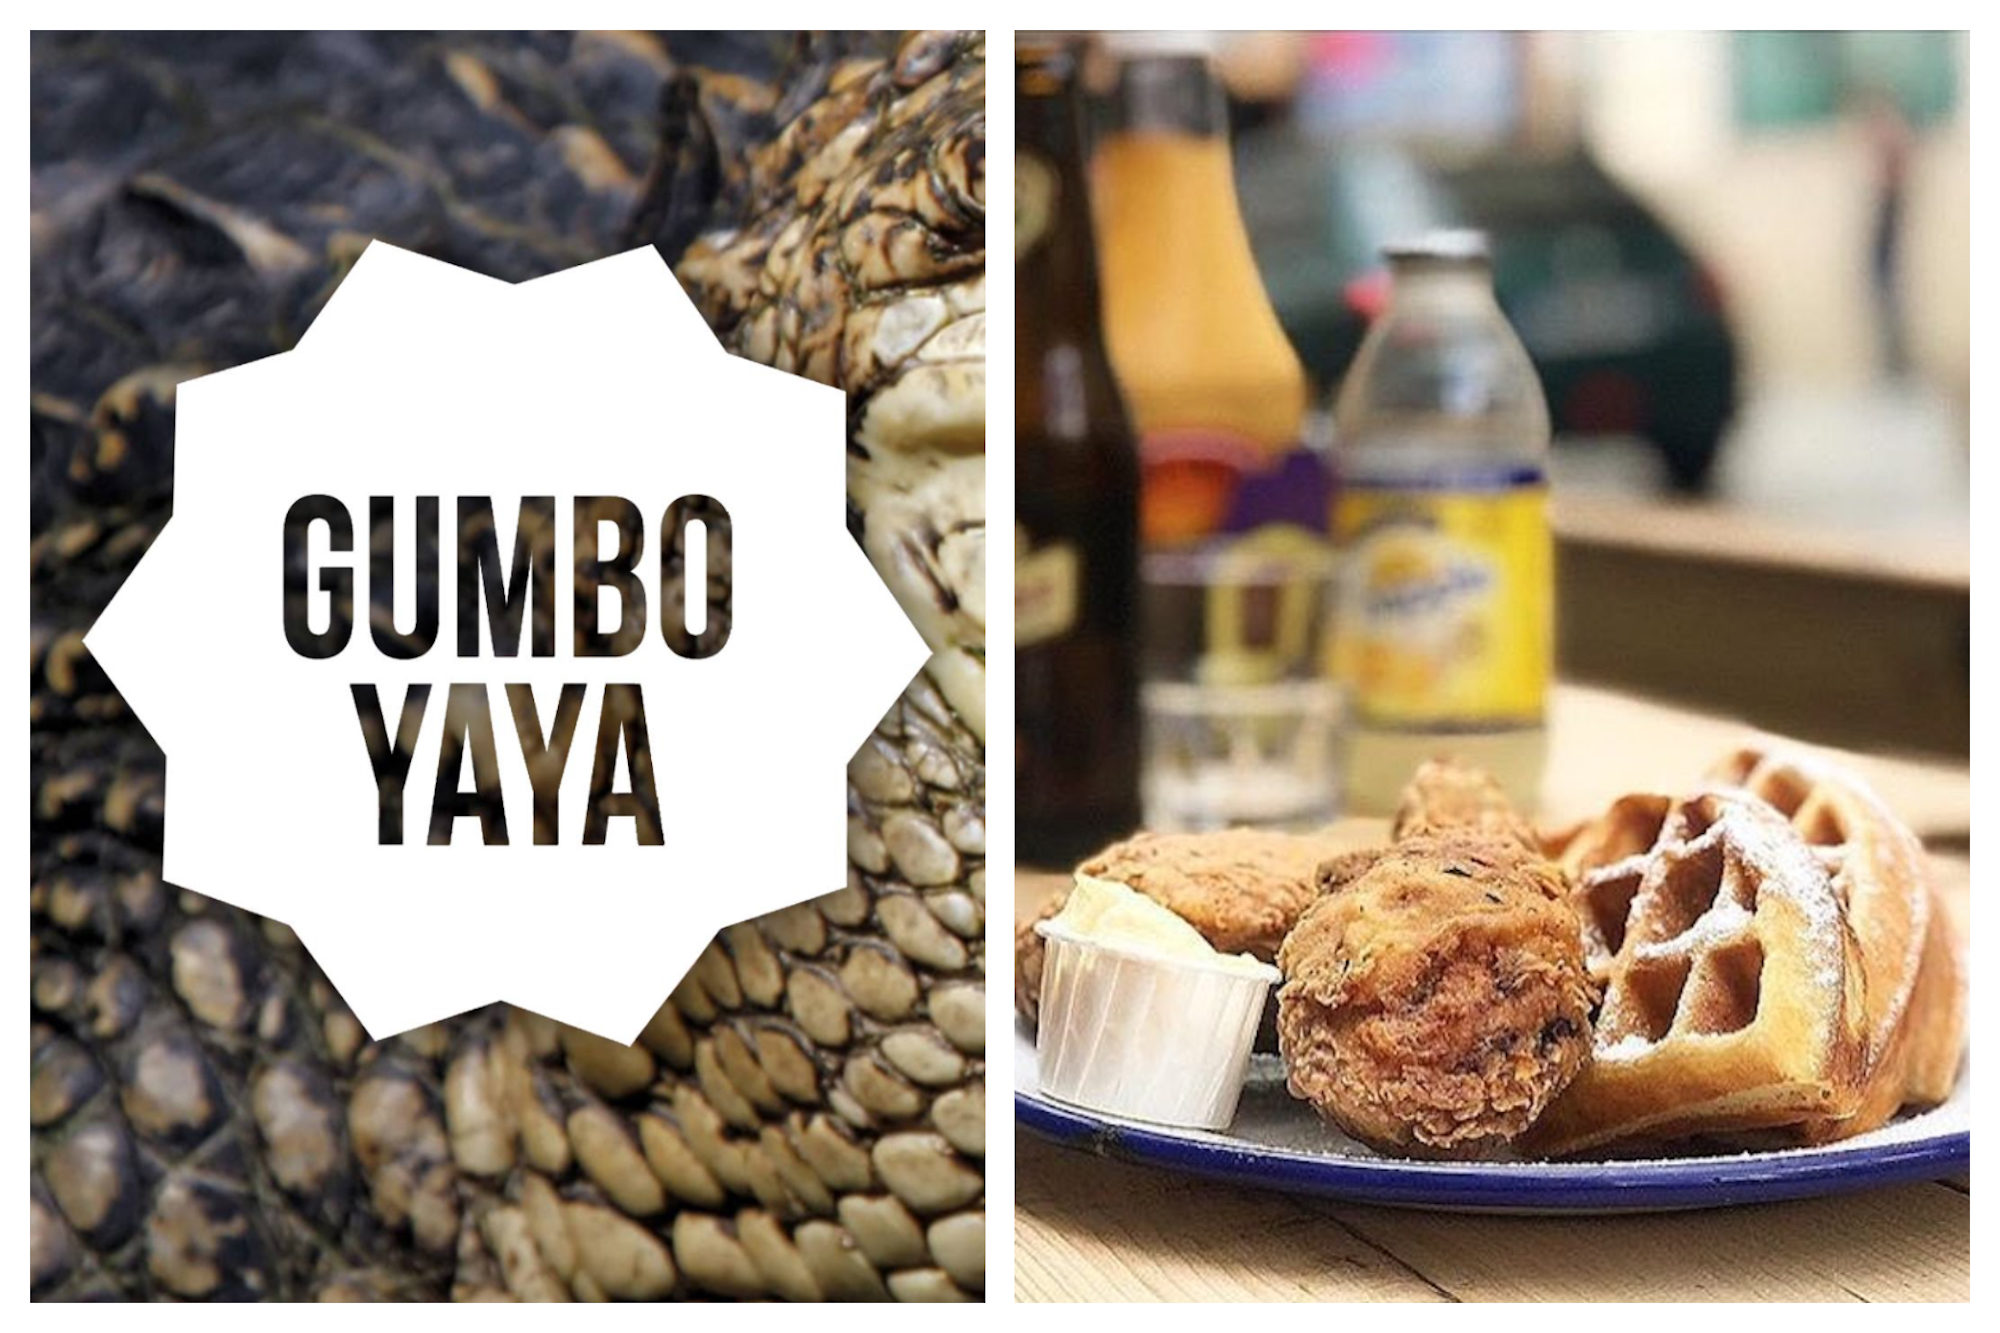 HiP Paris blog's favorite Paris restaurant for American comfort food is Gumbo Yaya for the fried chicken and waffles.